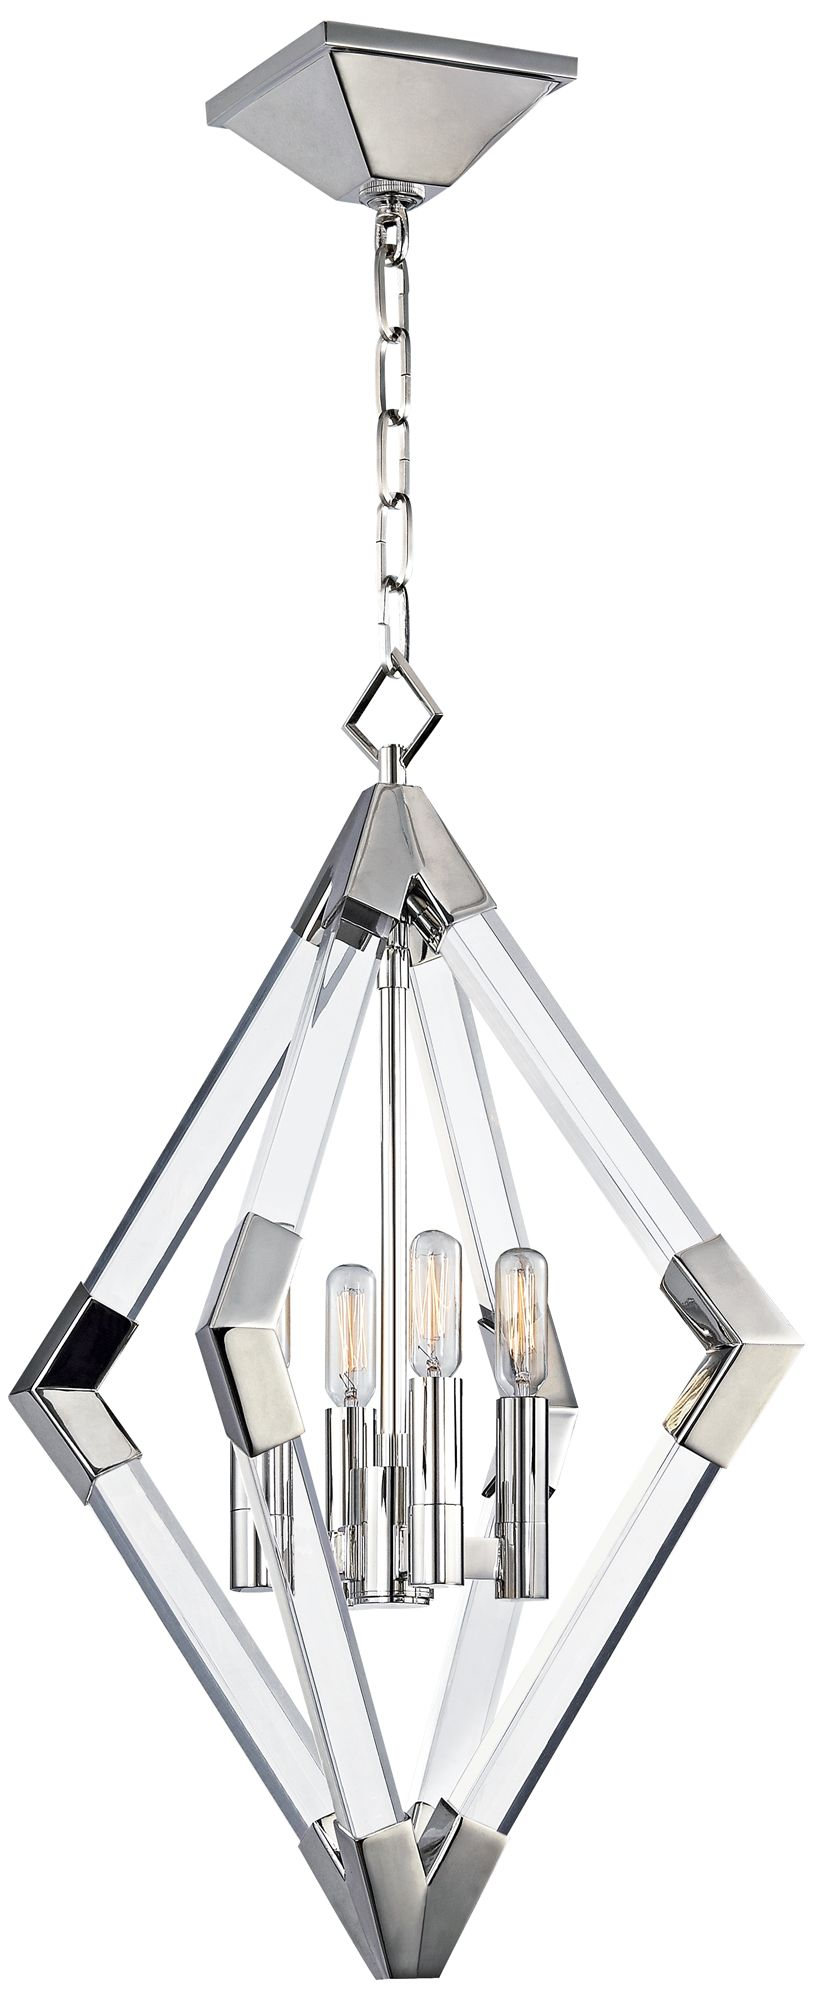 Hudson Valley Lyons 17 1/4 W Polished Nickel Pendant Light  sc 1 st  L&s Plus & Hudson Valley Lyons 17 1/4